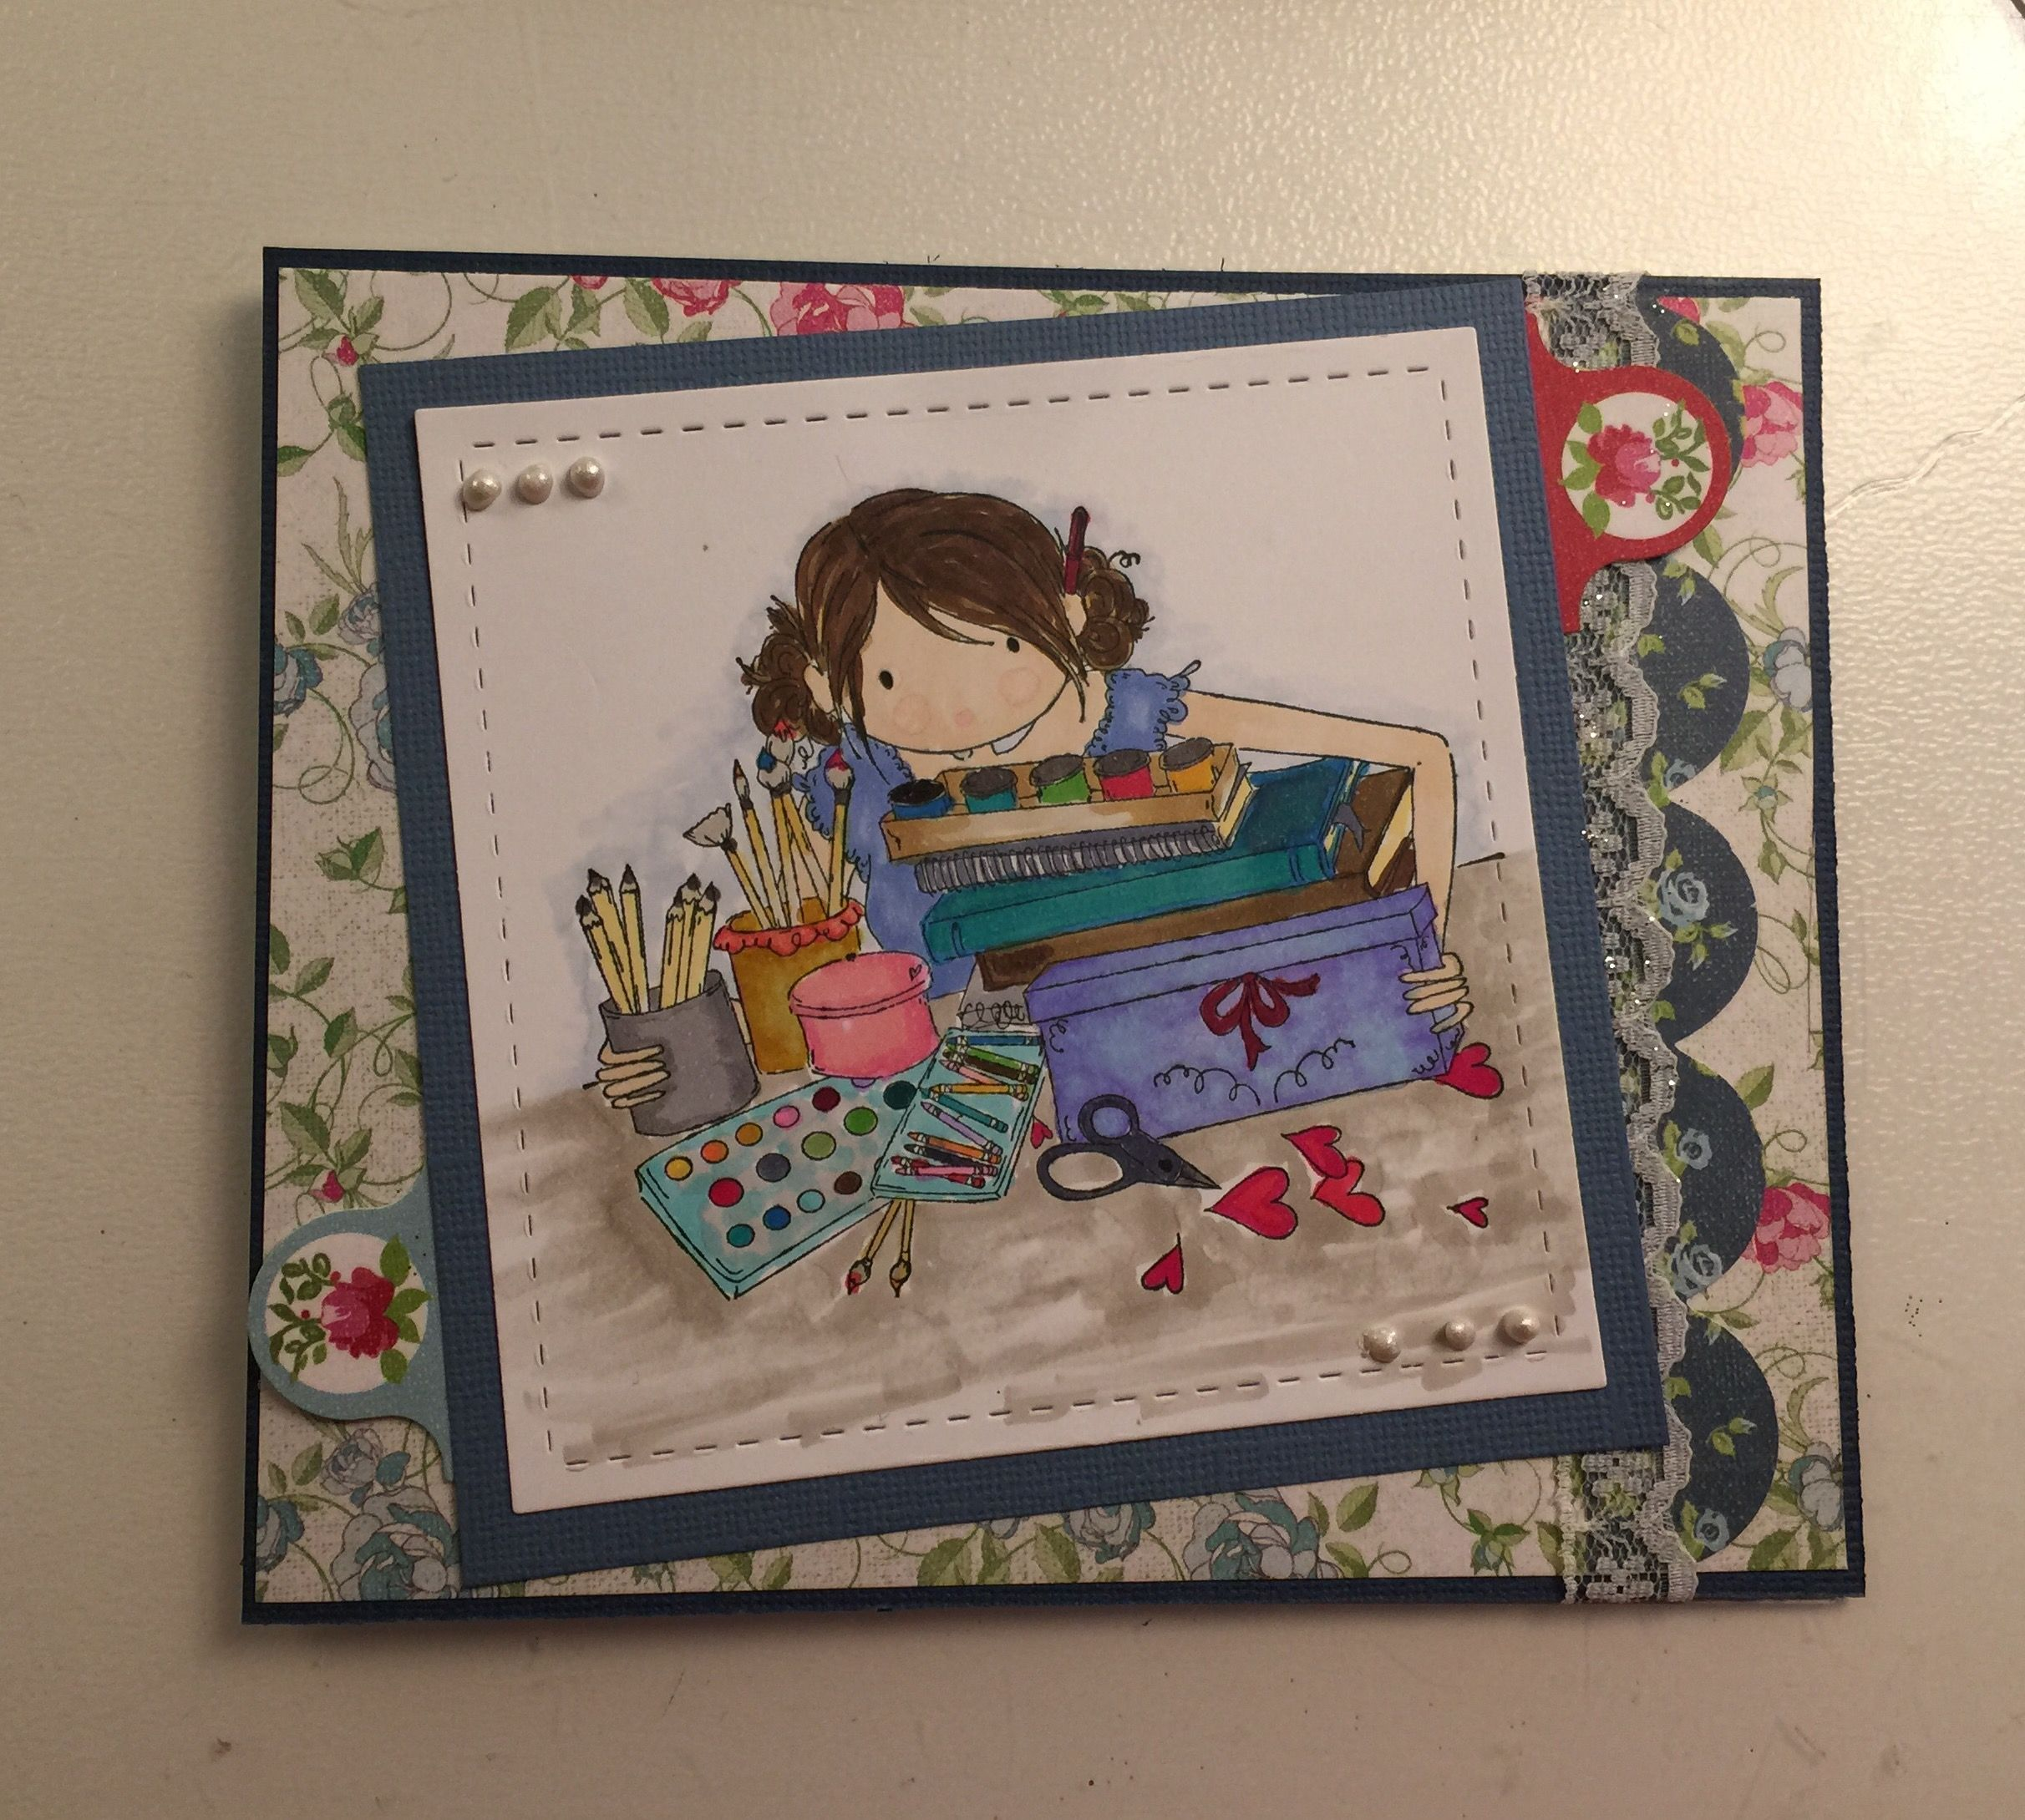 Stamping Ideas For Card Making Part - 39: Uptown Girl - Callista Loves To Craft · CardmakingStampingCard IdeasMaking  ...